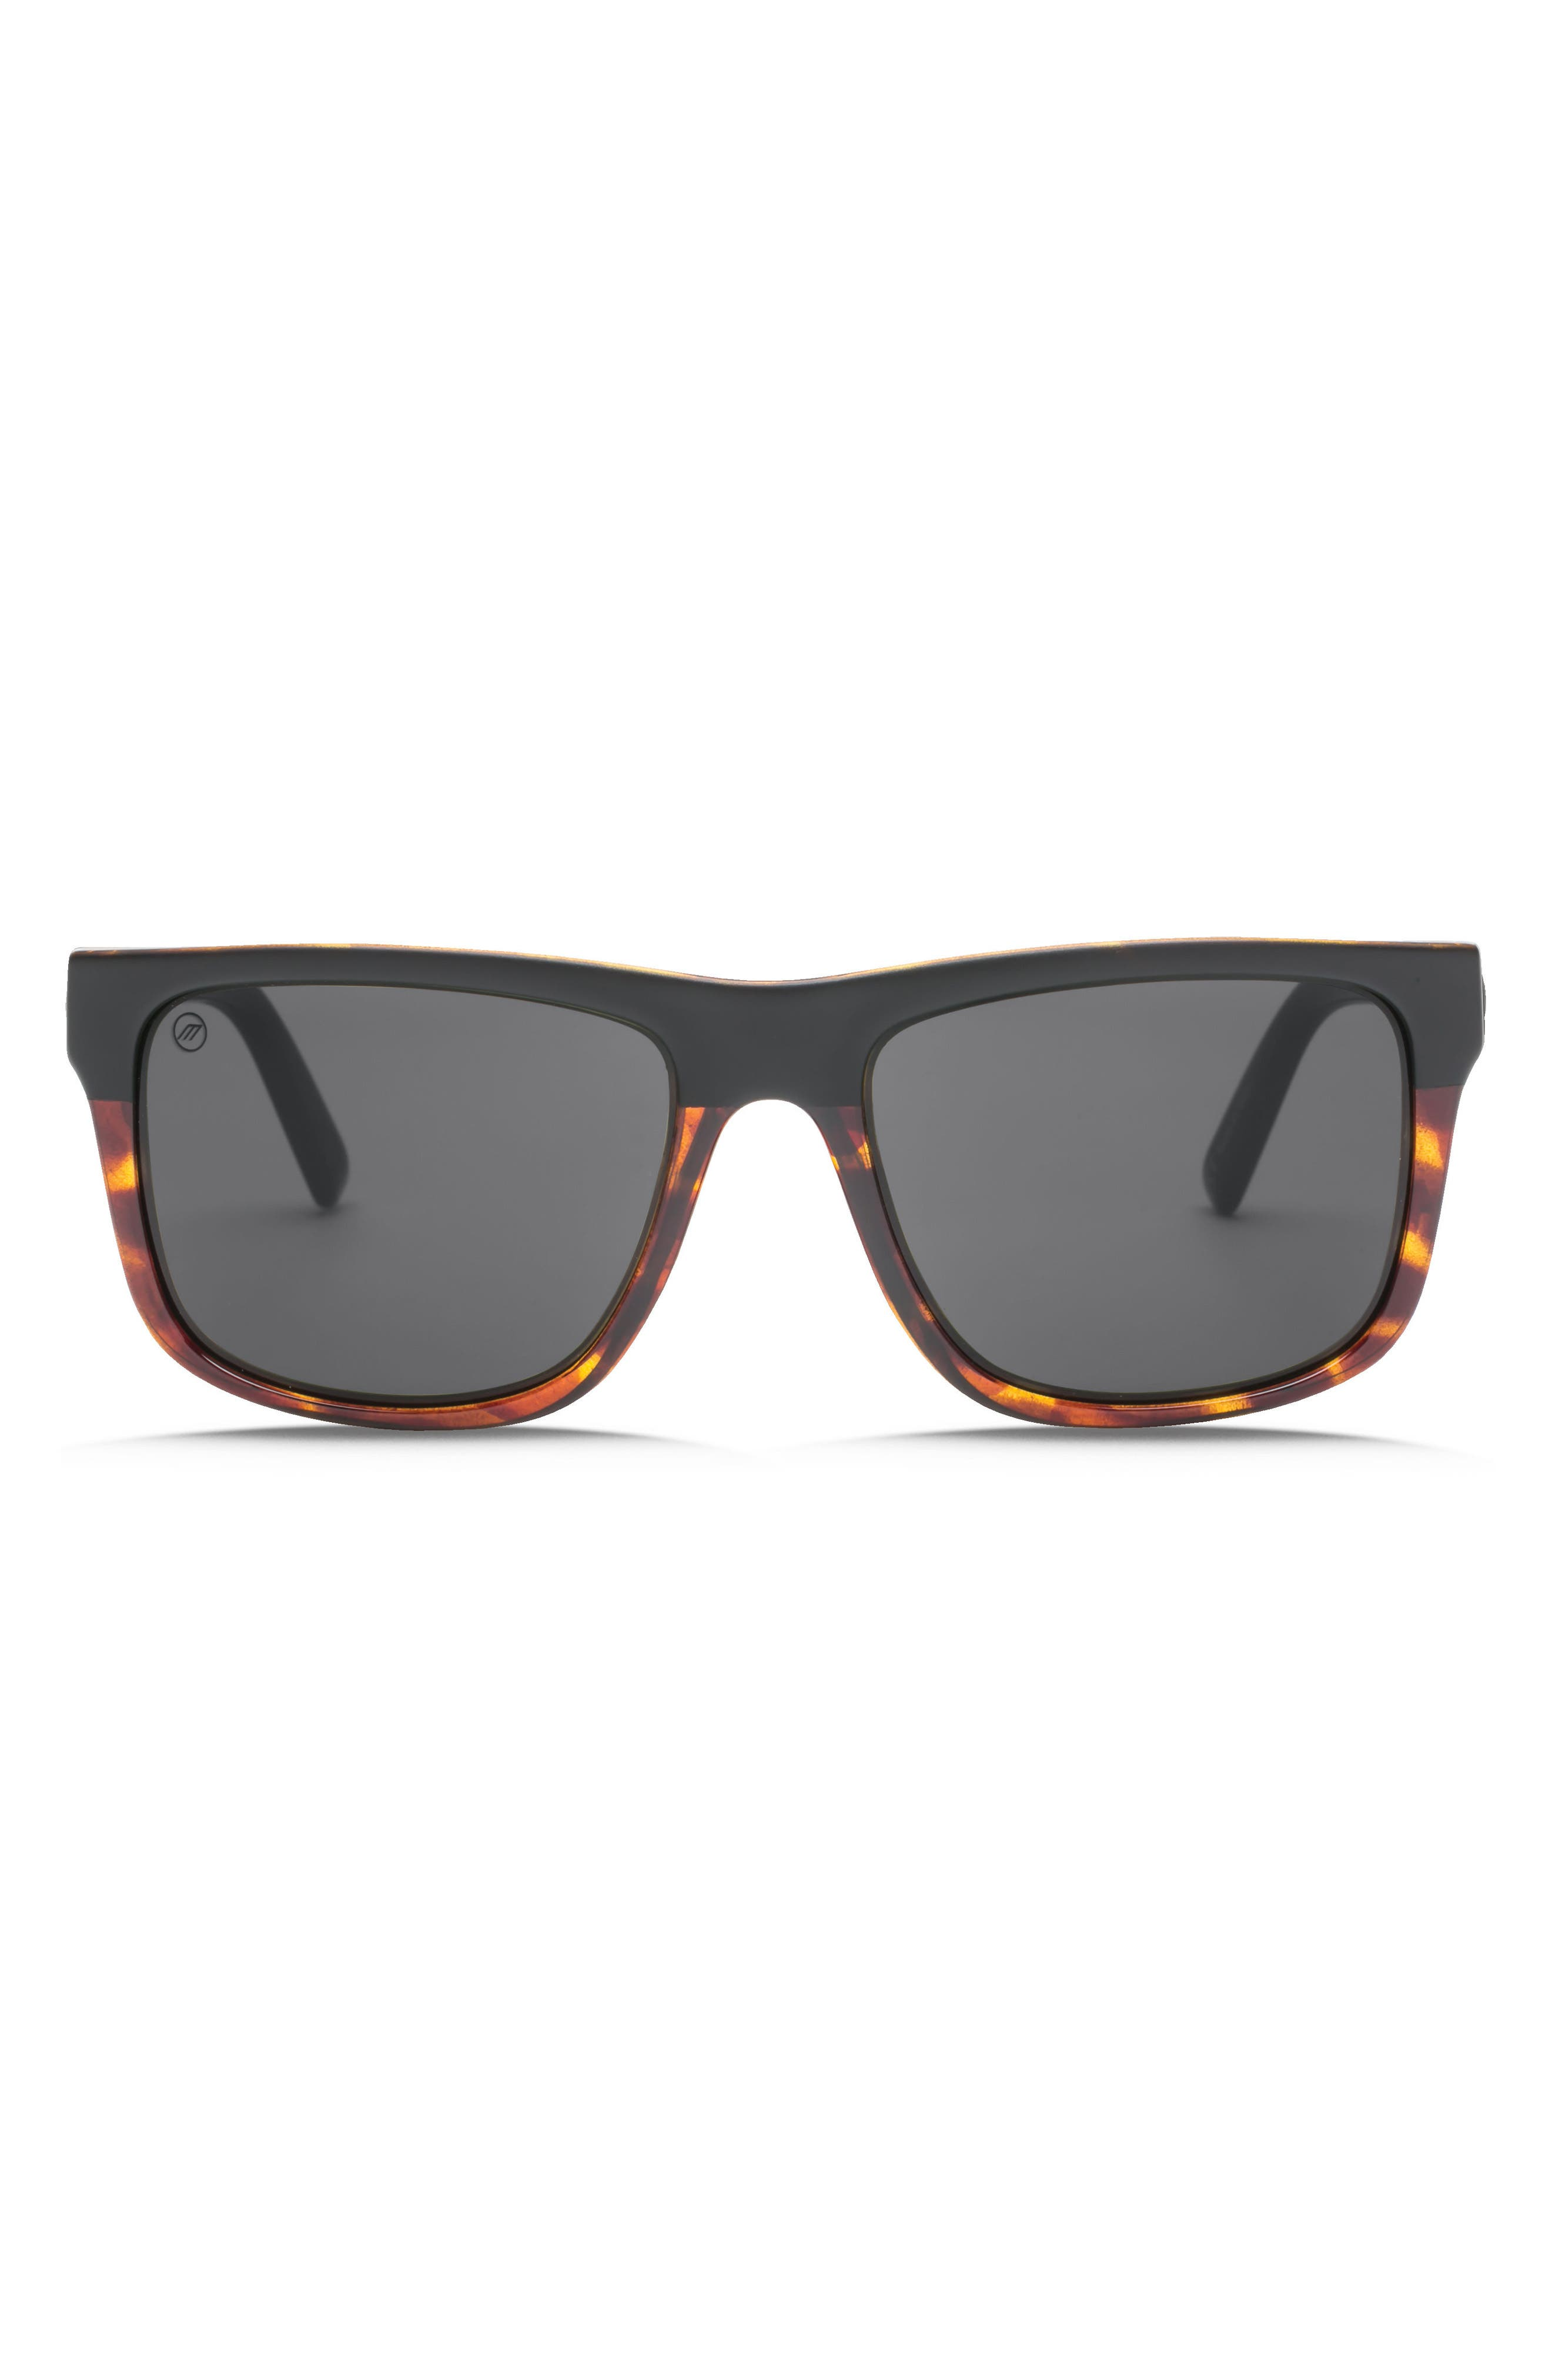 Alternate Image 1 Selected - ELECTRIC Swingarm XL 59mm Sunglasses